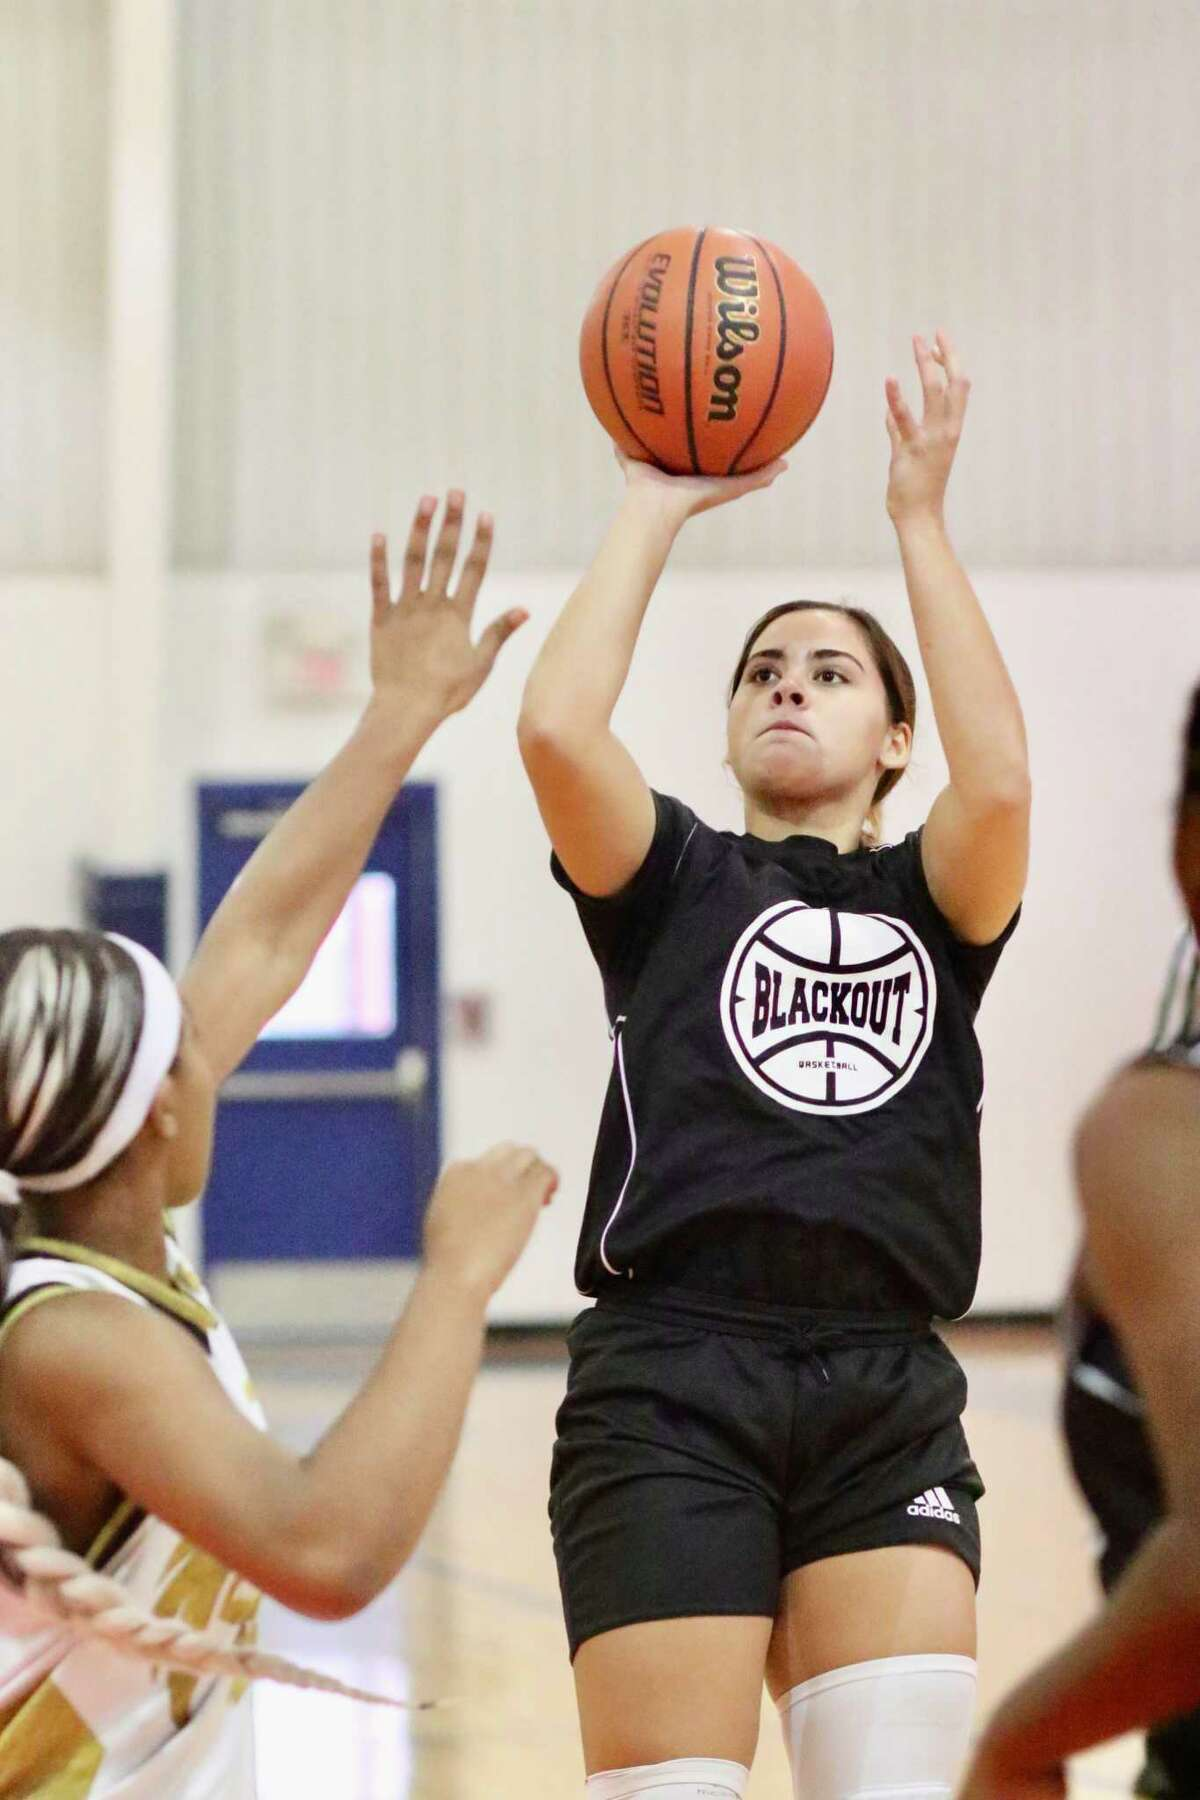 Evelyn Quiroz averaged 13 points, 5 rebounds, 2.5 assists and 2.6 steals per game last season.